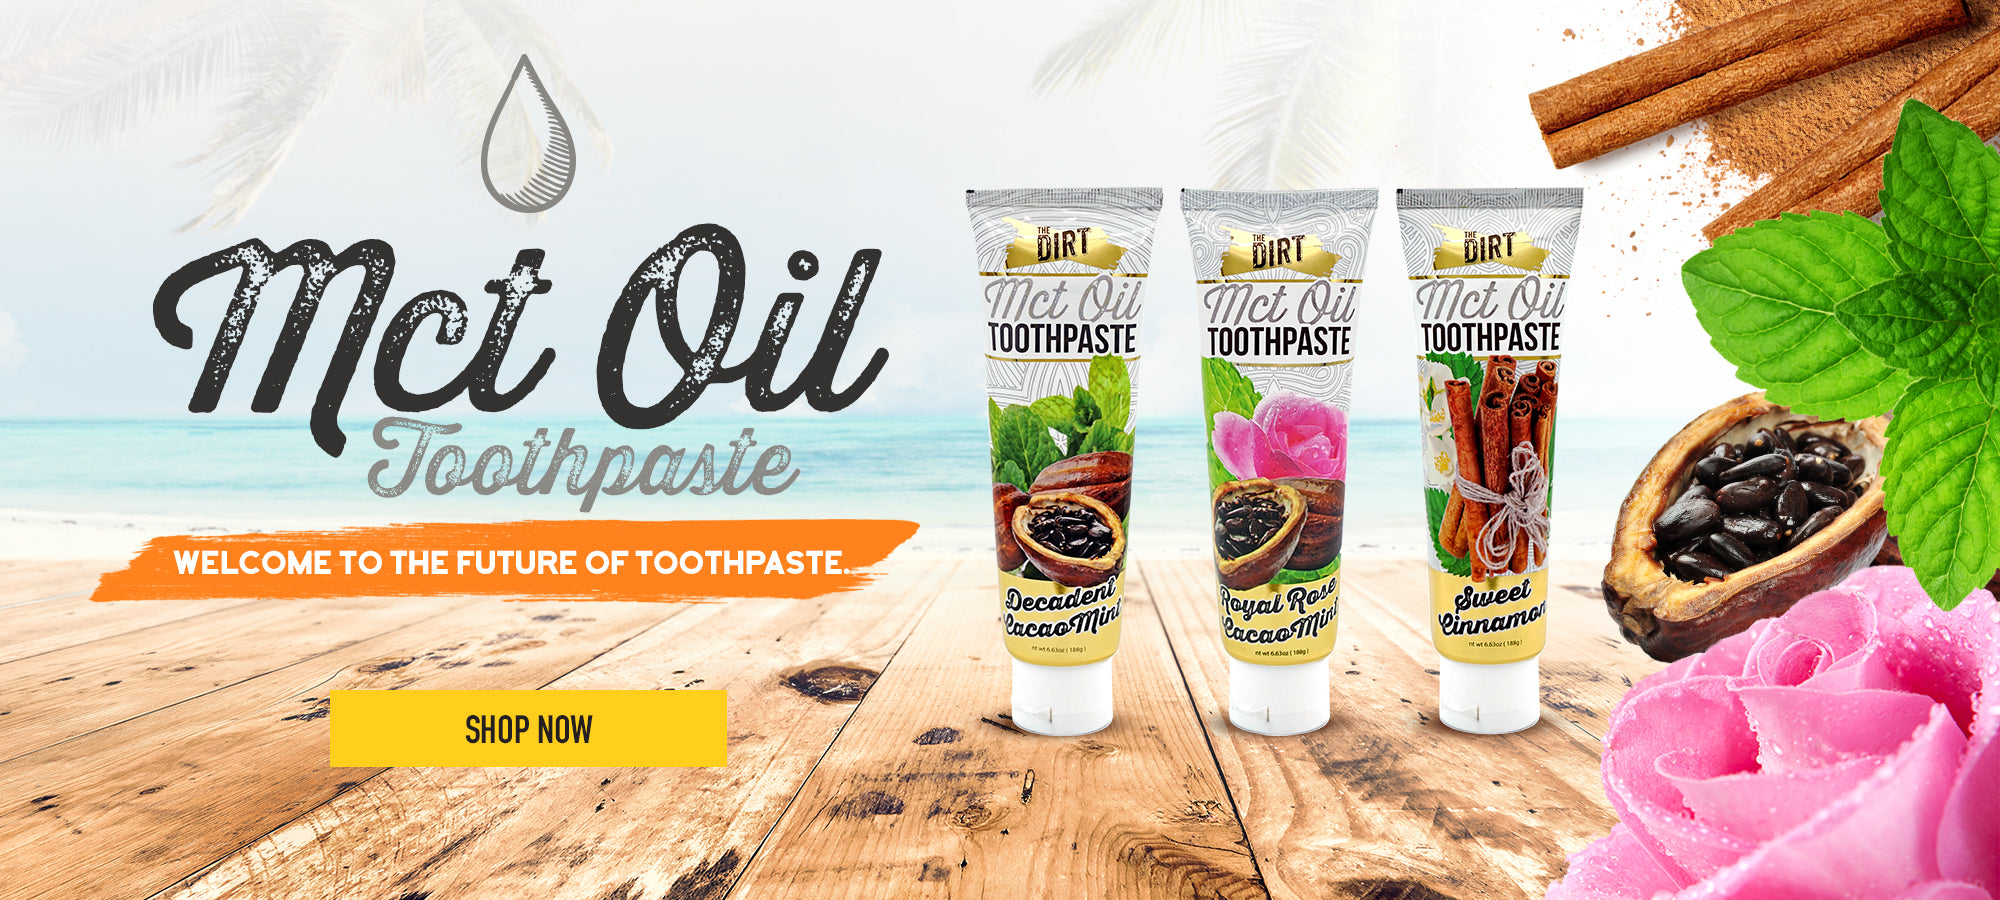 The Dirt Natural Toothpaste Reviews